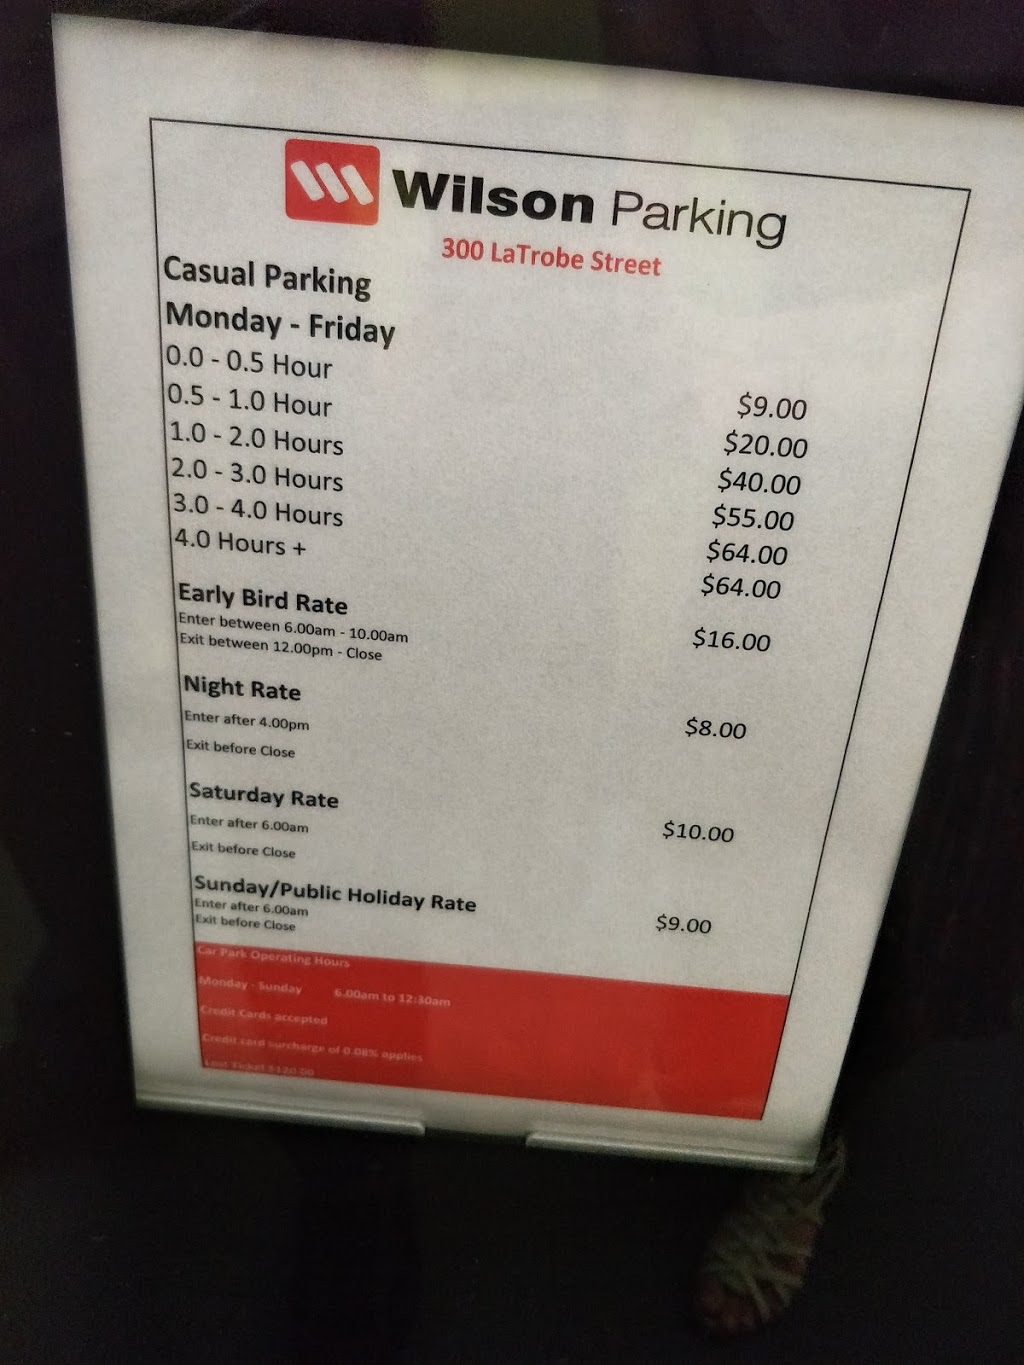 Wilson Parking - 300 La Trobe St | parking | 300 La Trobe St, Melbourne VIC 3000, Australia | 1800727546 OR +61 1800 727 546